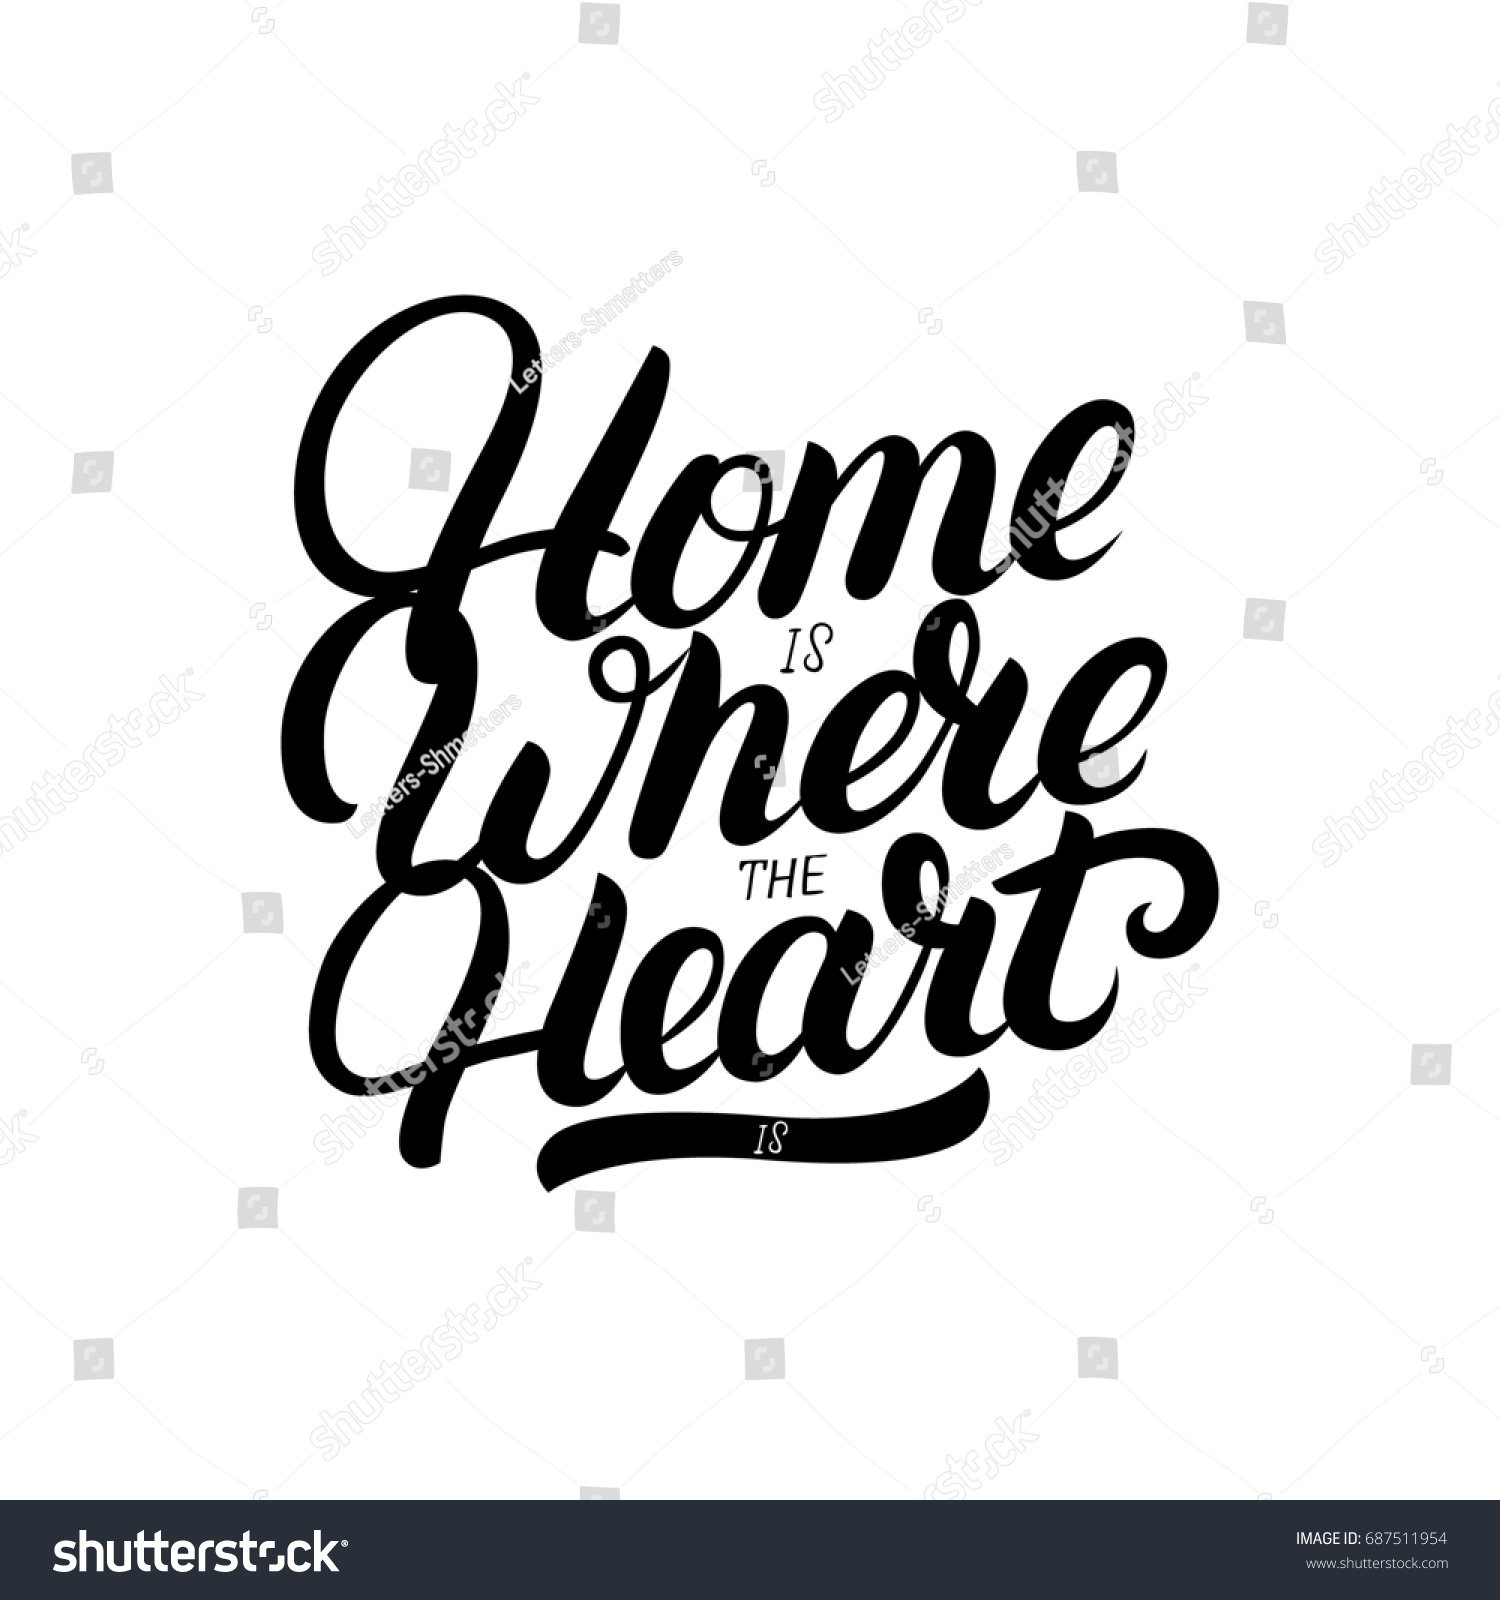 Home Is Where The Heart Is Quote: Home Where Heart Hand Written Lettering Stock Illustration